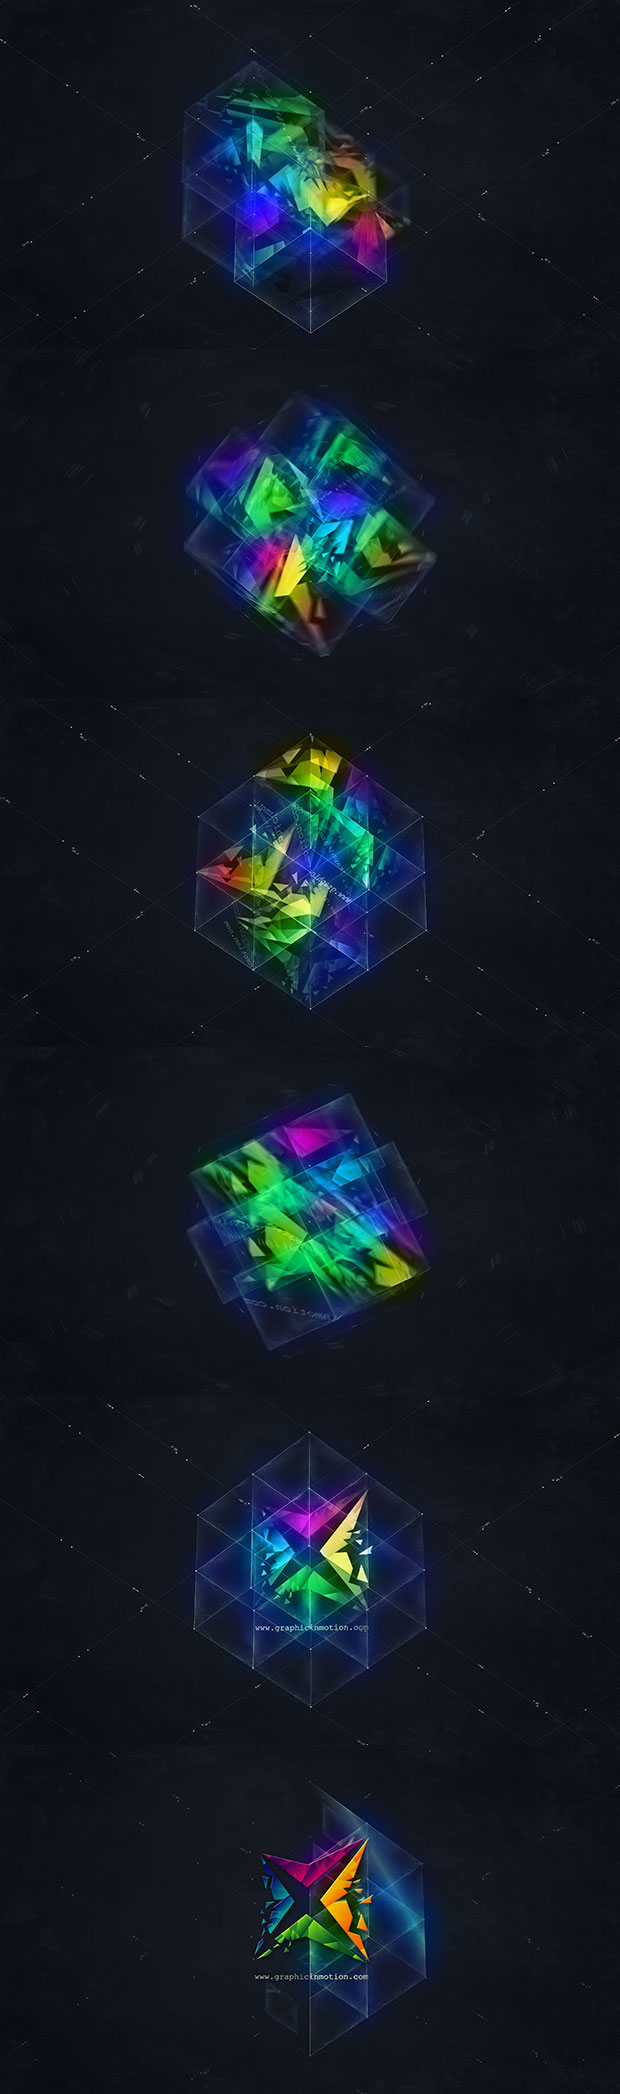 3D Magic Cube Logo Reveal - 1